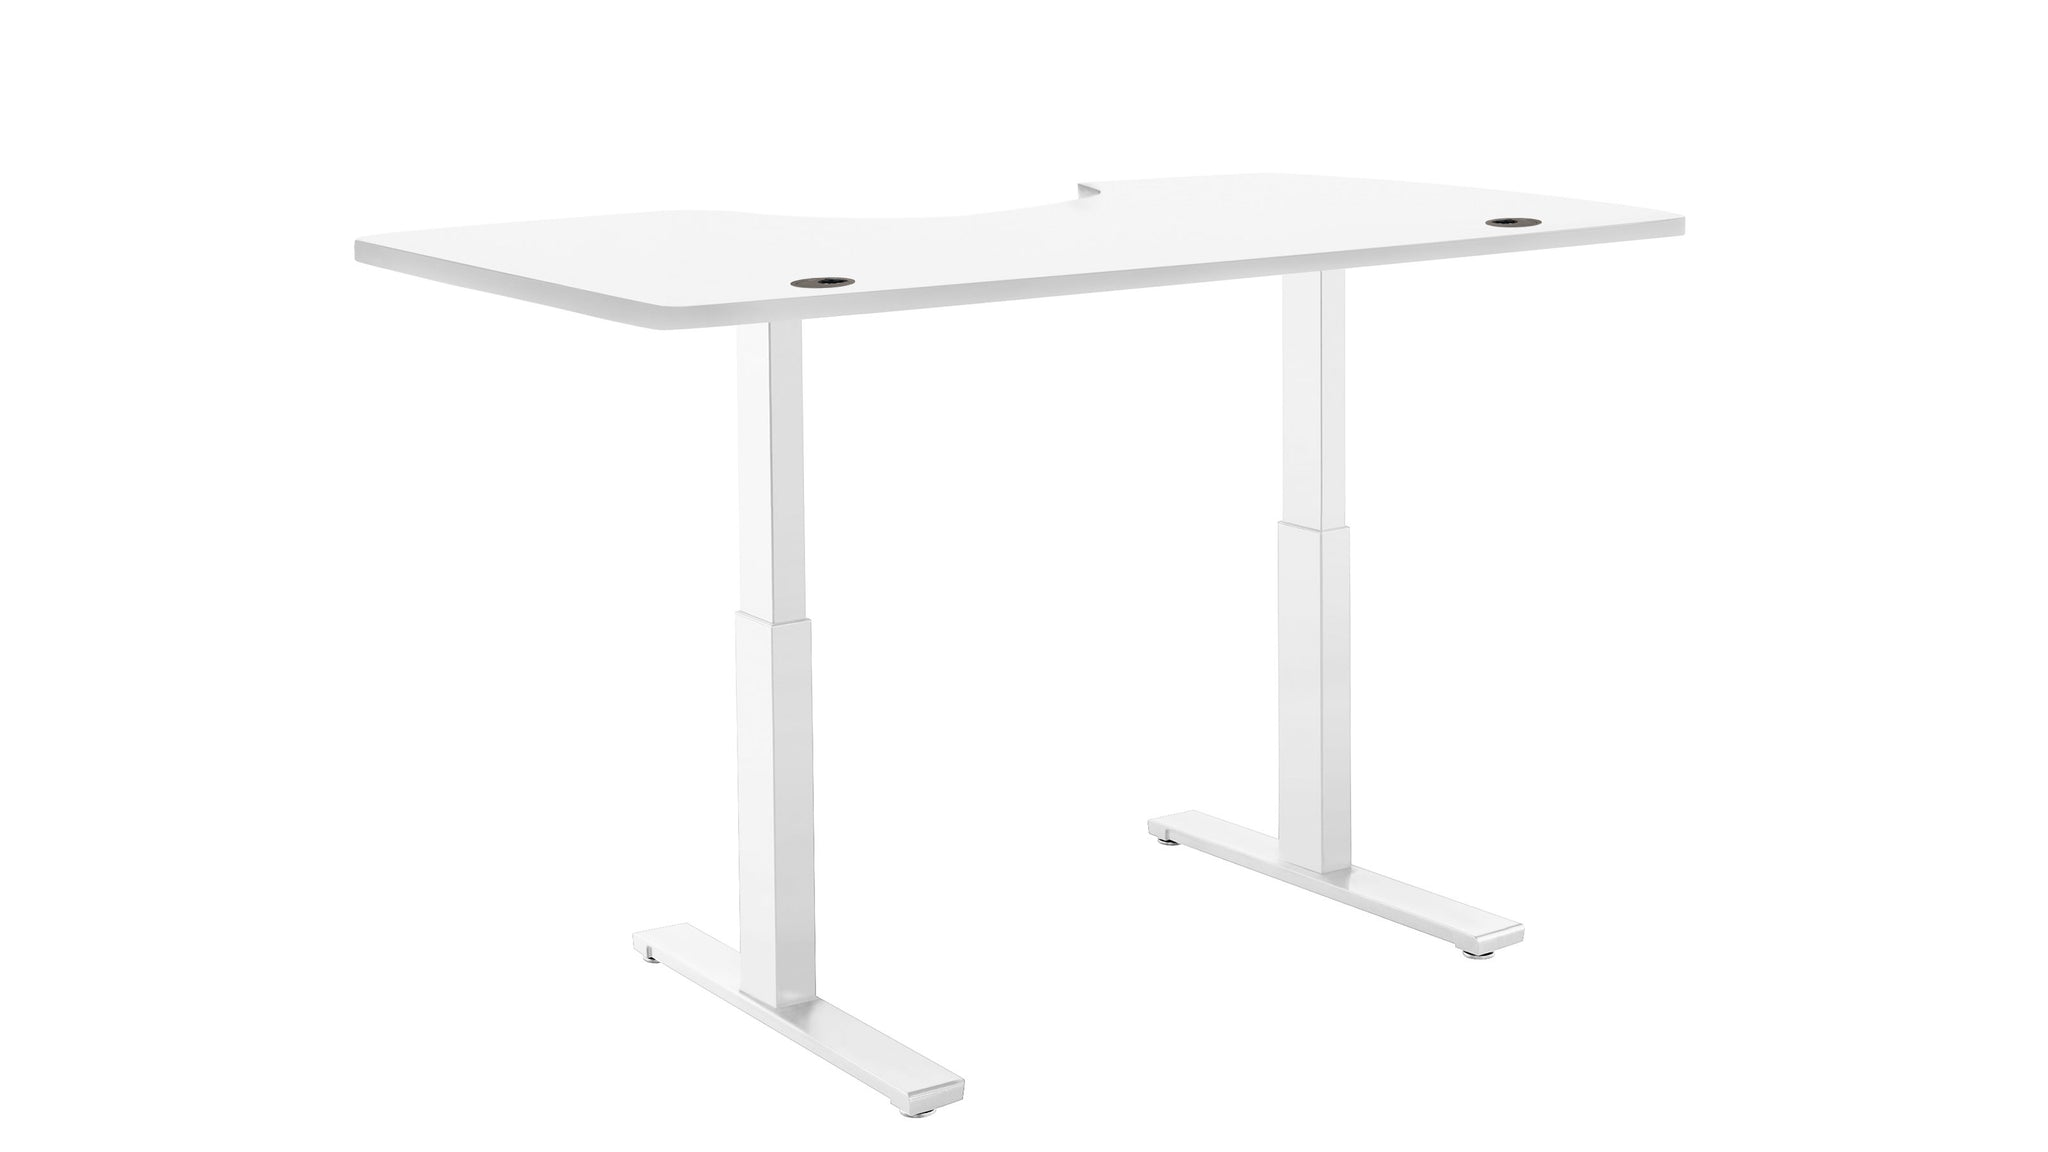 "ActiveDesk Standing Desk with Electric Adjustble Height 28 - 46 inches, White Frame - White Ergo Table Top size 53"" x 30"""